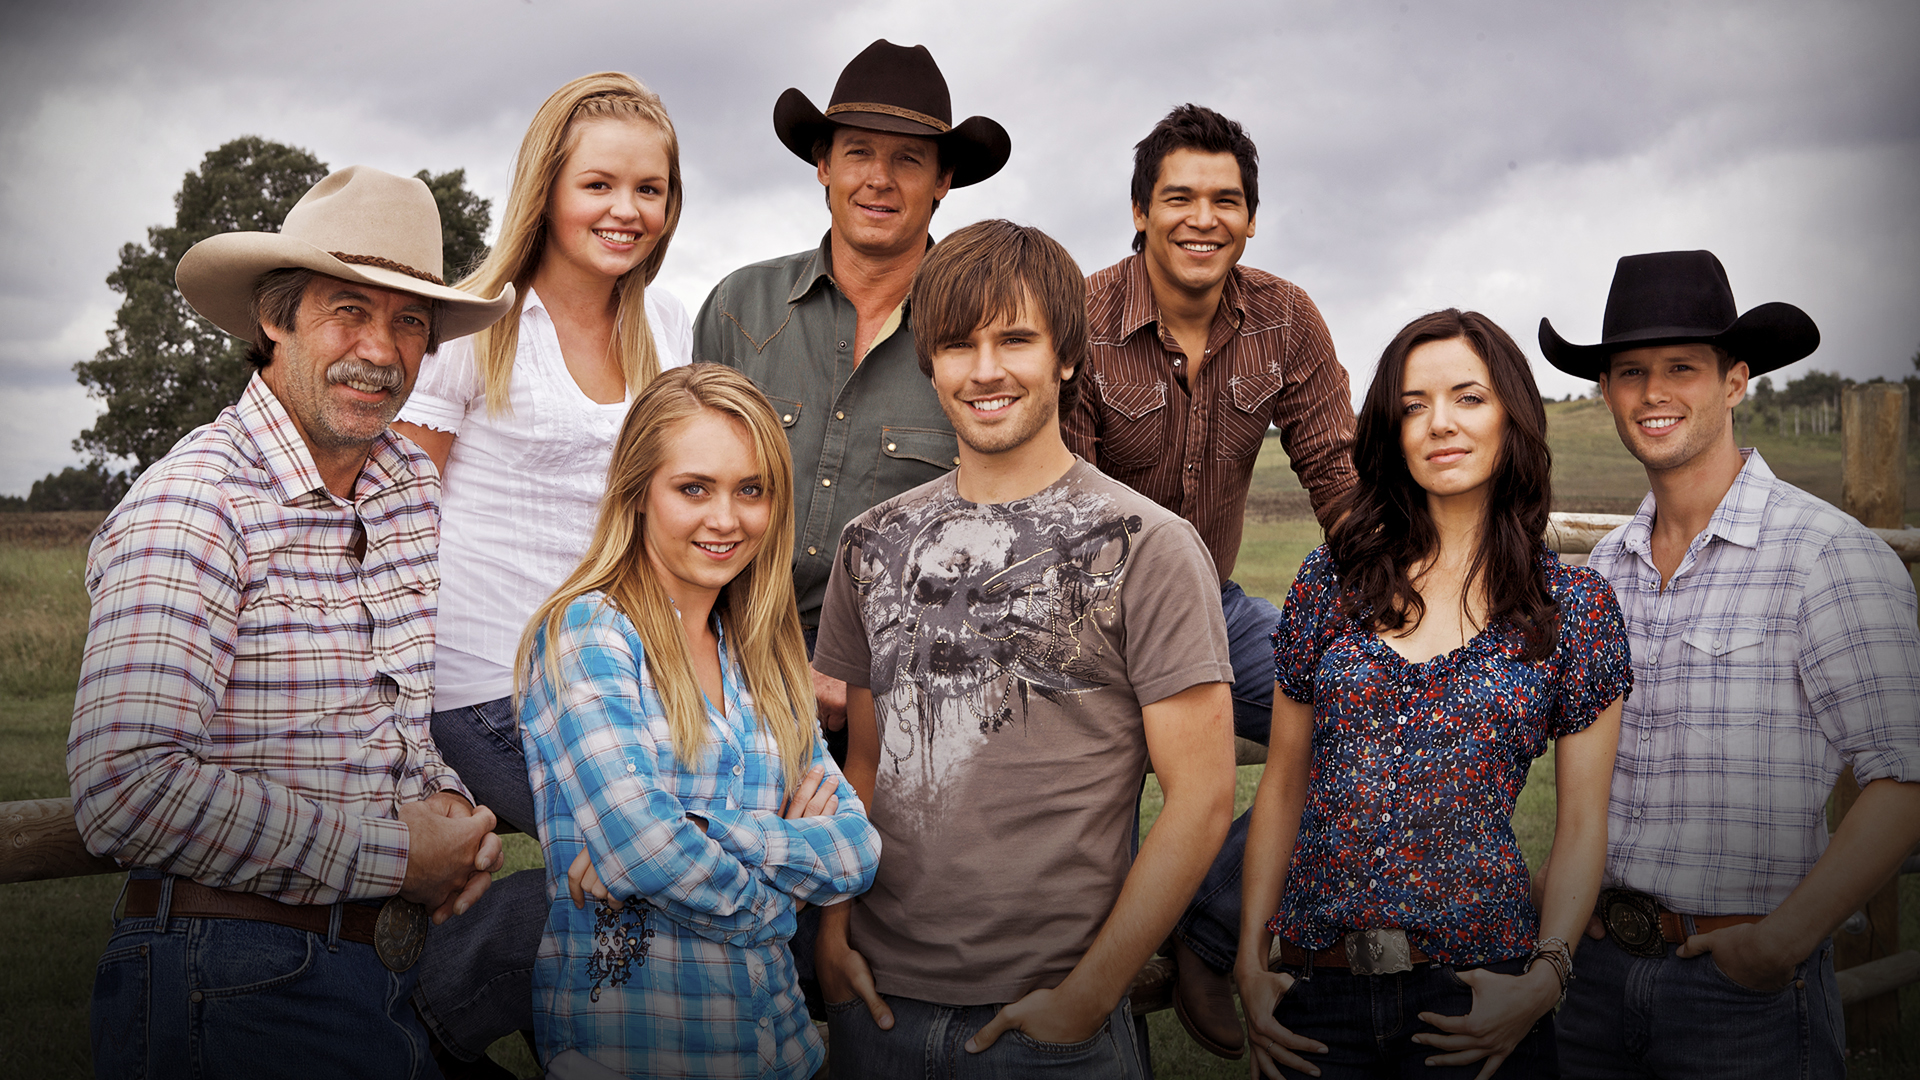 Heartland Season 15 in 2021: When will it come out? Release Date, Cast, and Story update